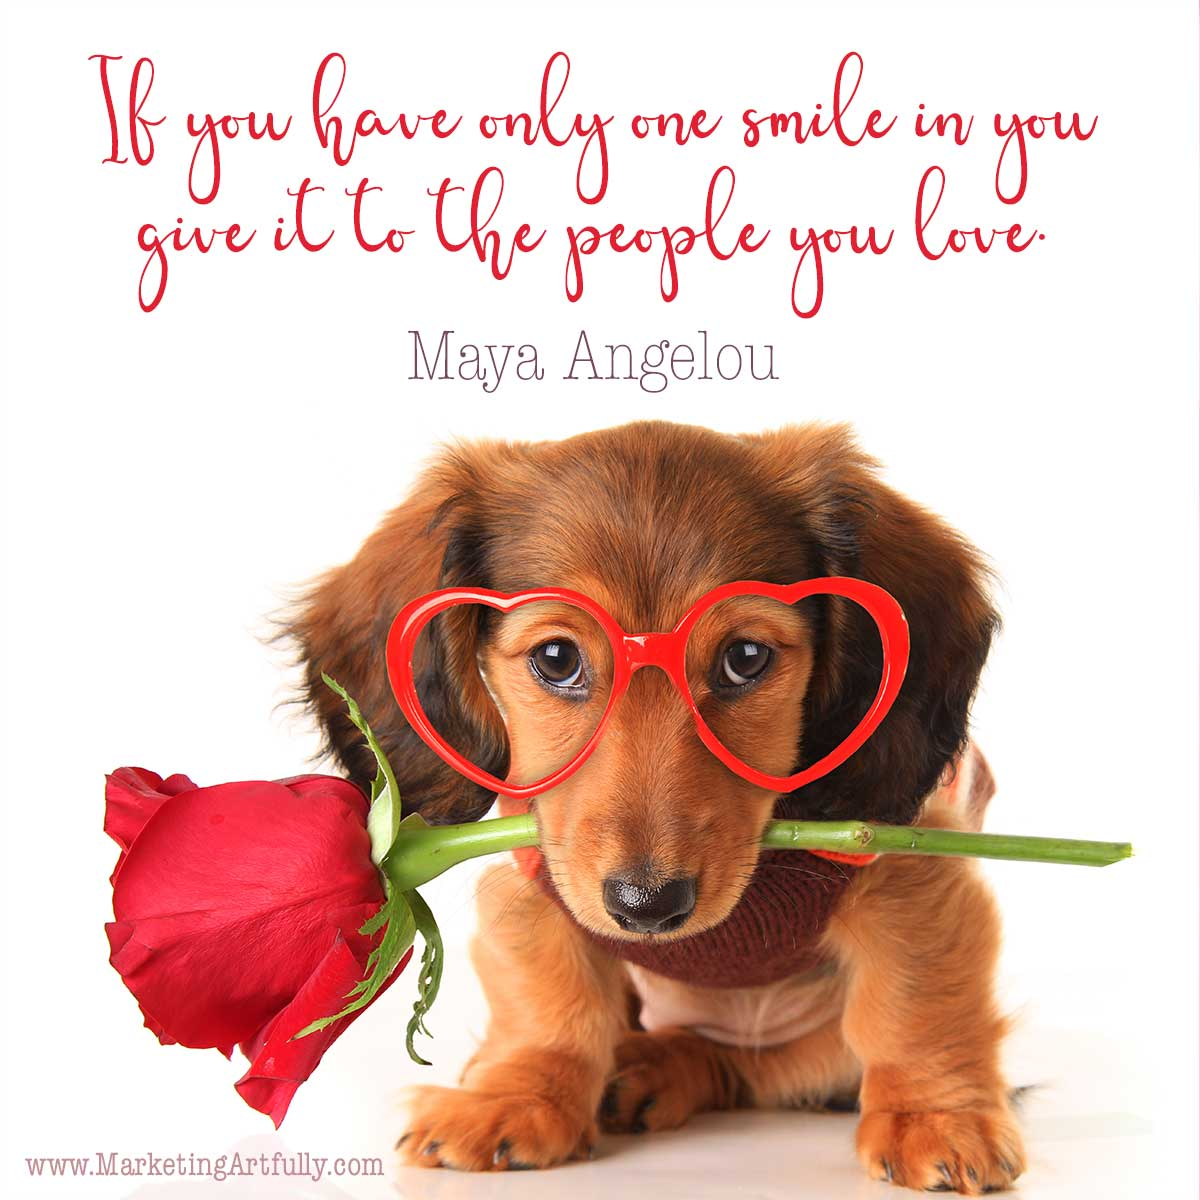 If you have only one smile in you give it to the people you love. Maya Angelou Quotes ... From my valentines day and love quotes for small business. Quotes with pictures for email, social media and customer appreciation.